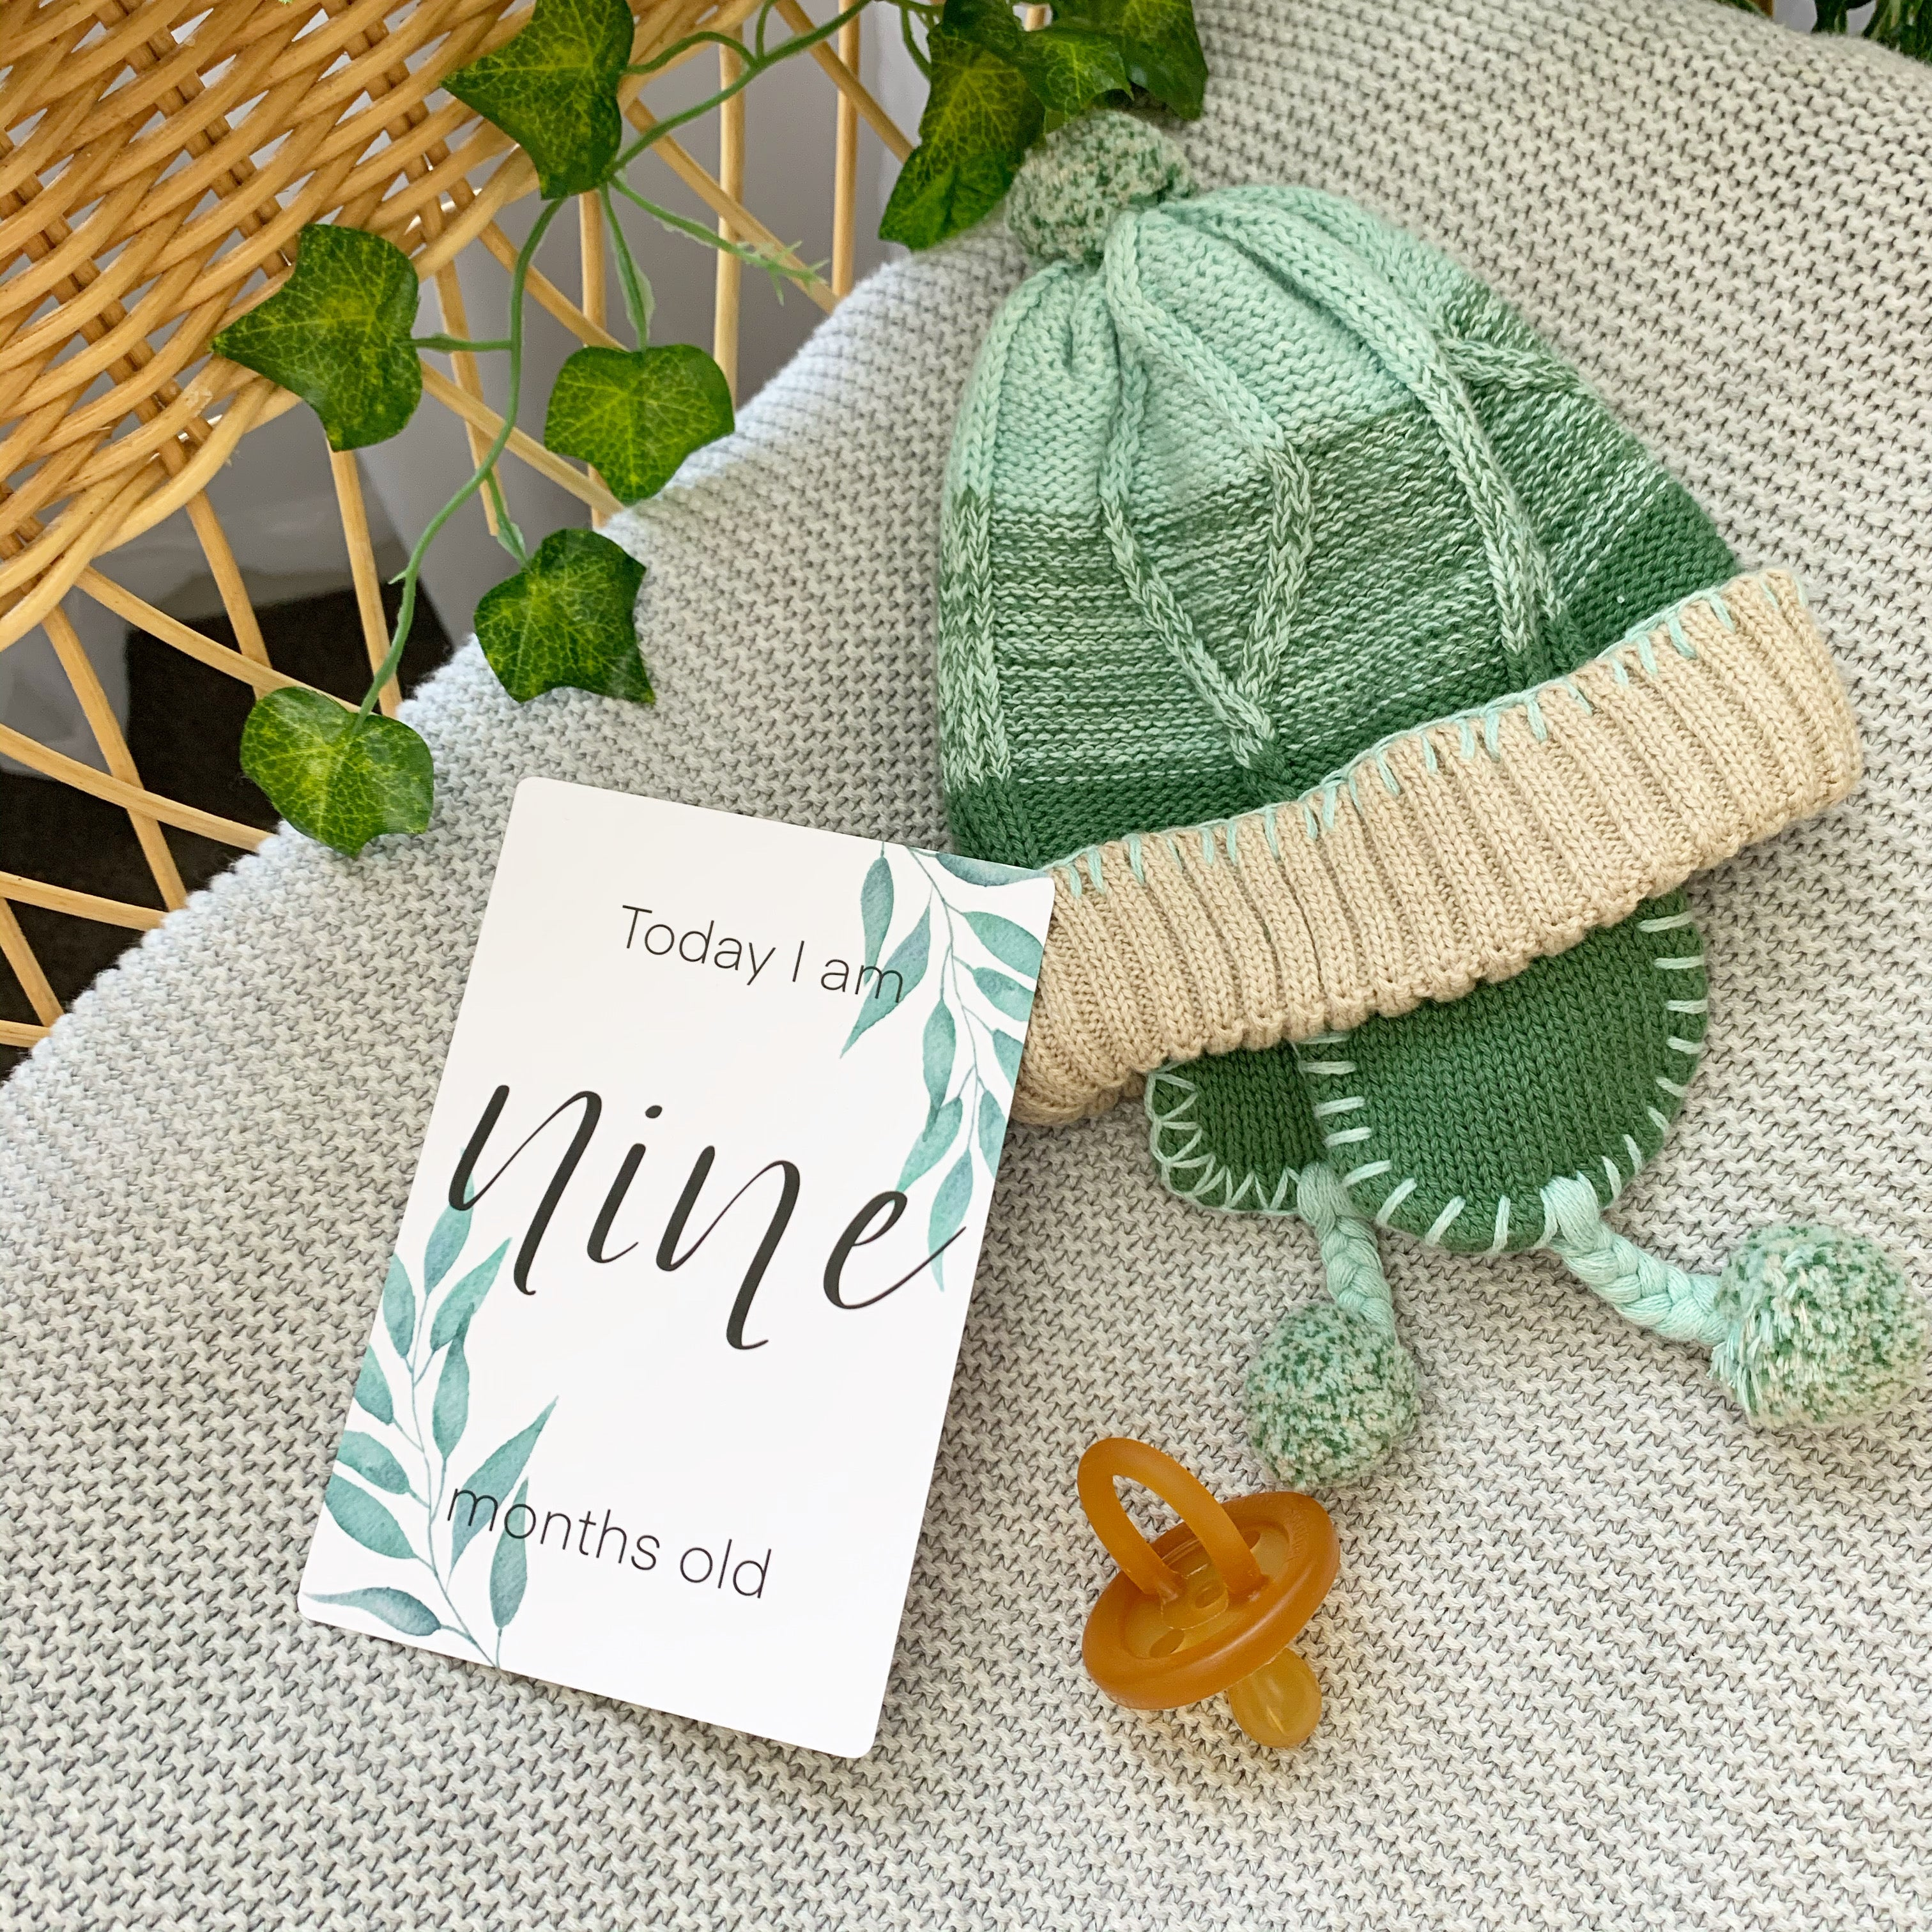 leaf milestone card in cane bassinet with leaves, green knitted baby bonnet/beanie, natural rubber soother/dummy